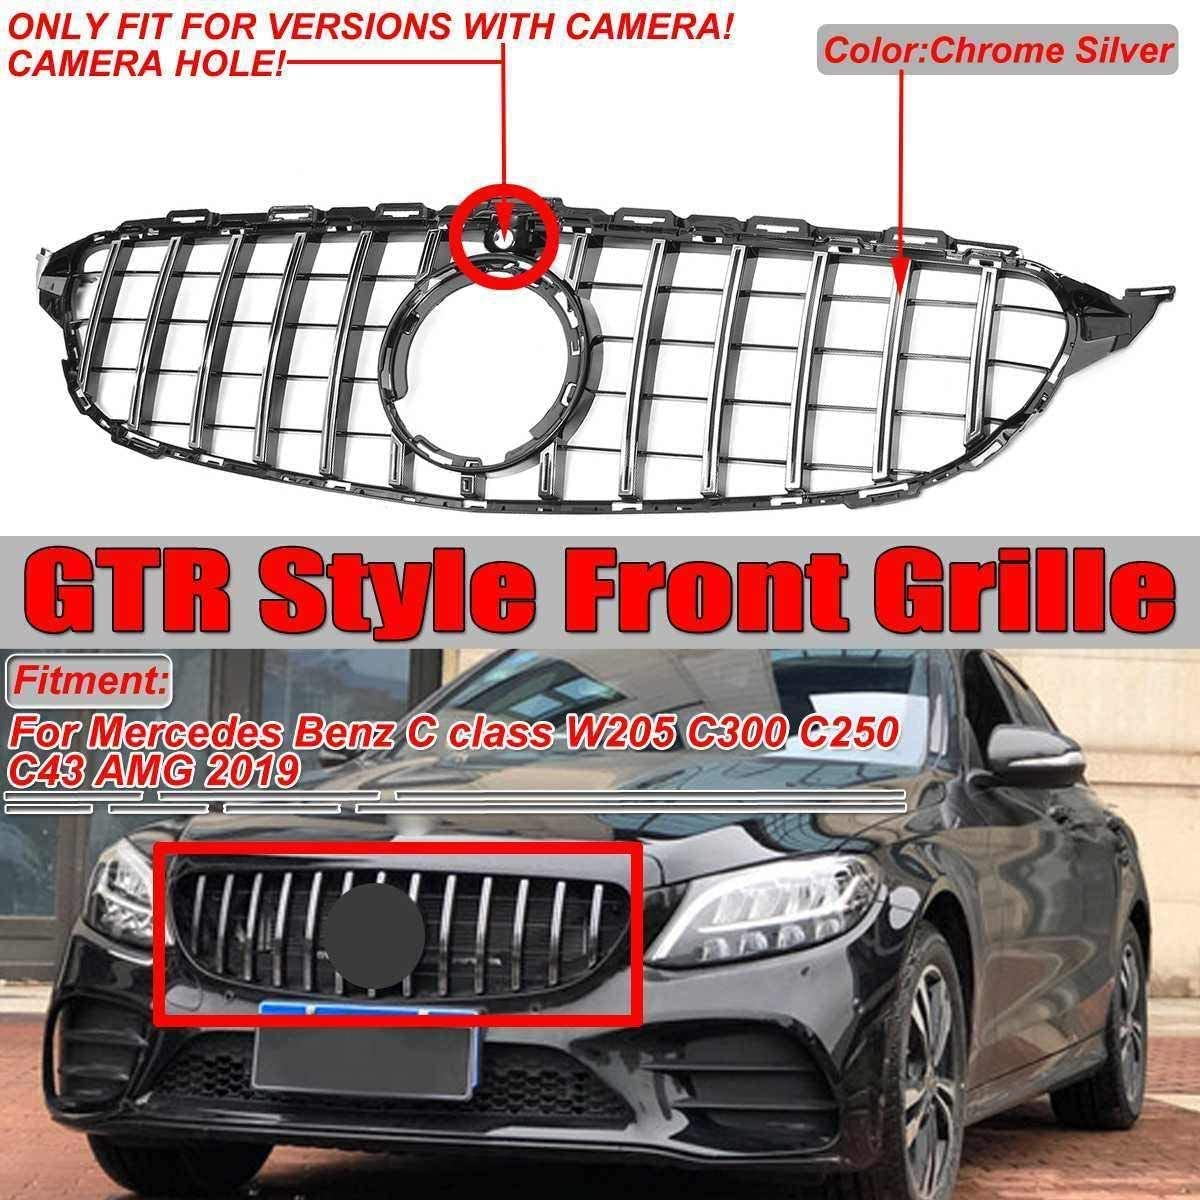 Black ZQTG GTR GT Grill Auto Frontgrill For Mercedes Benz C Class W205 C300 C250 C43 2019 Silver With Camera